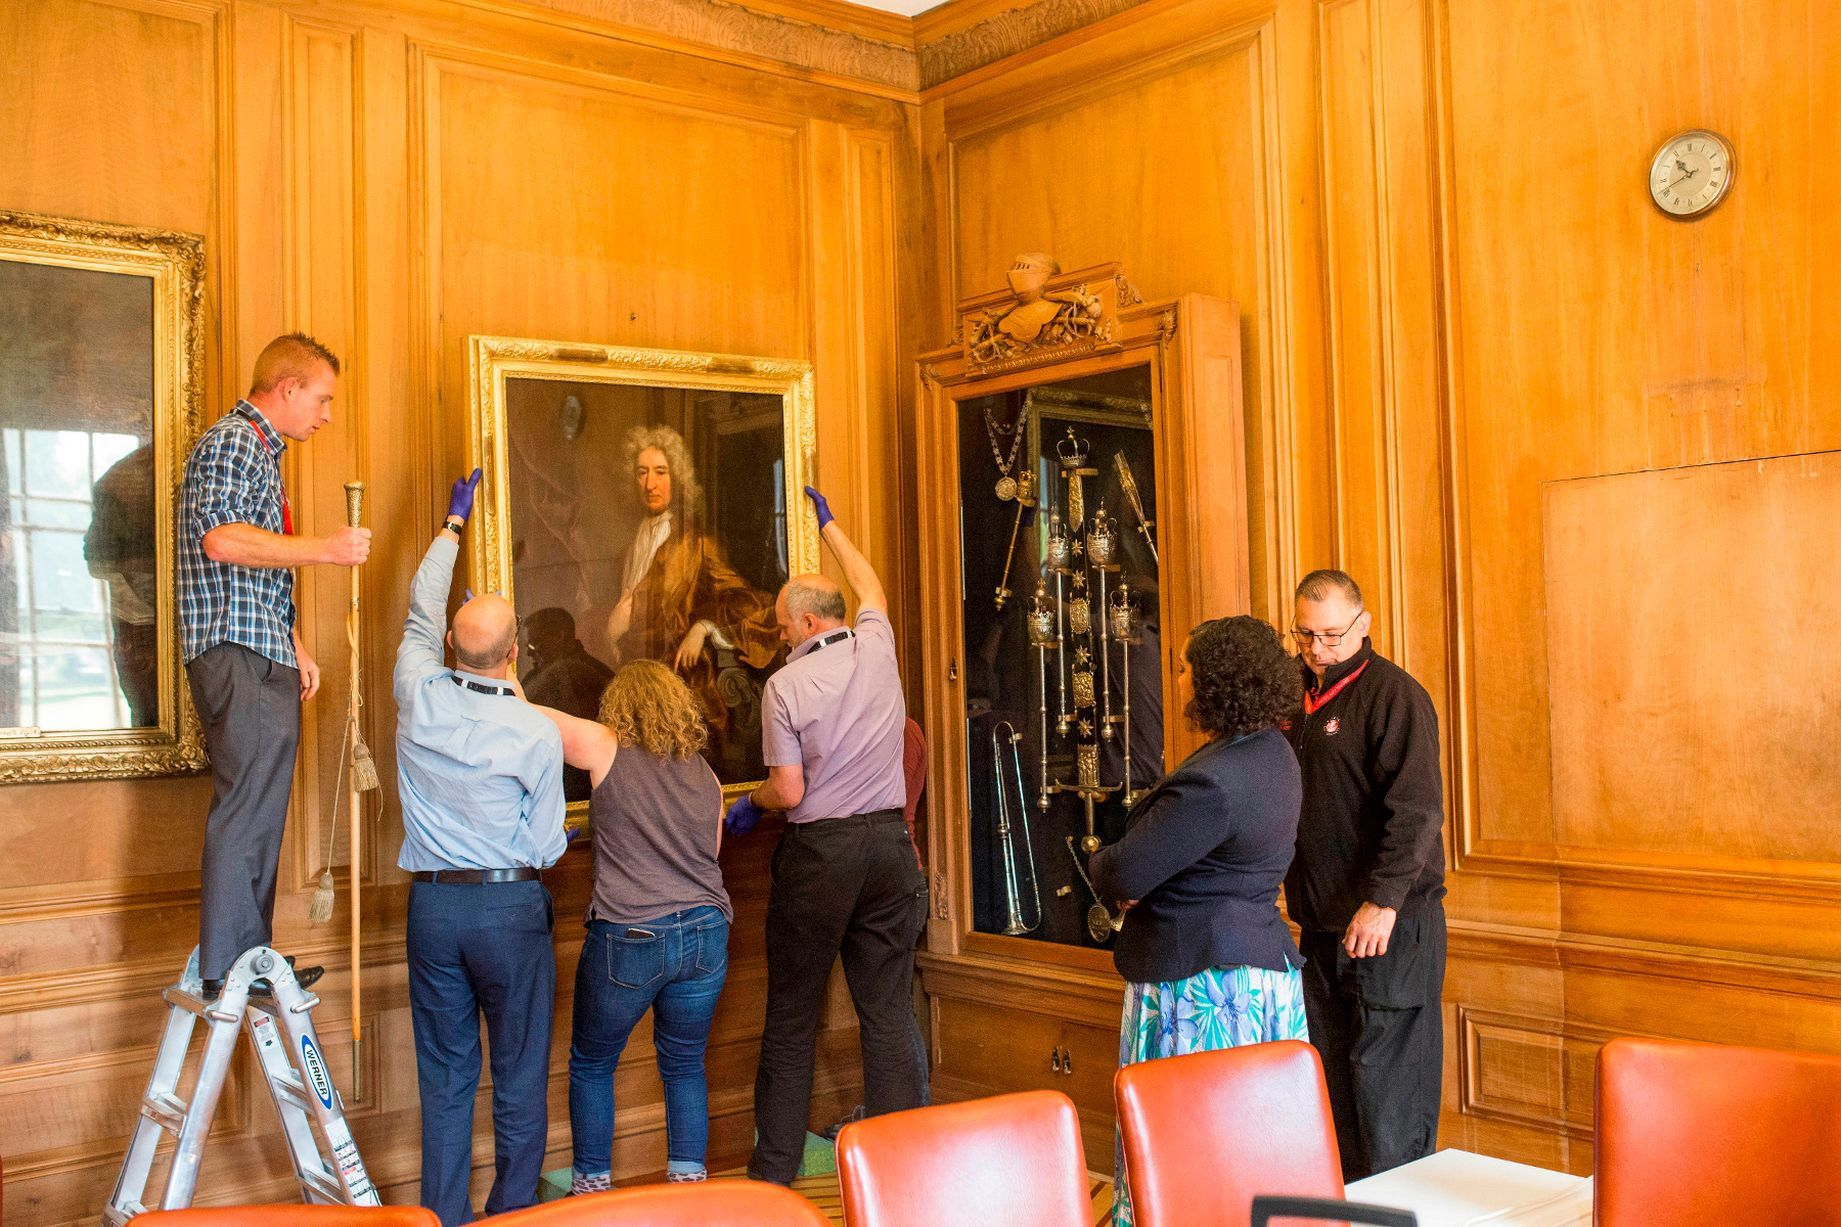 Slave Trader's Portrait Removed From Bristol Mayor's